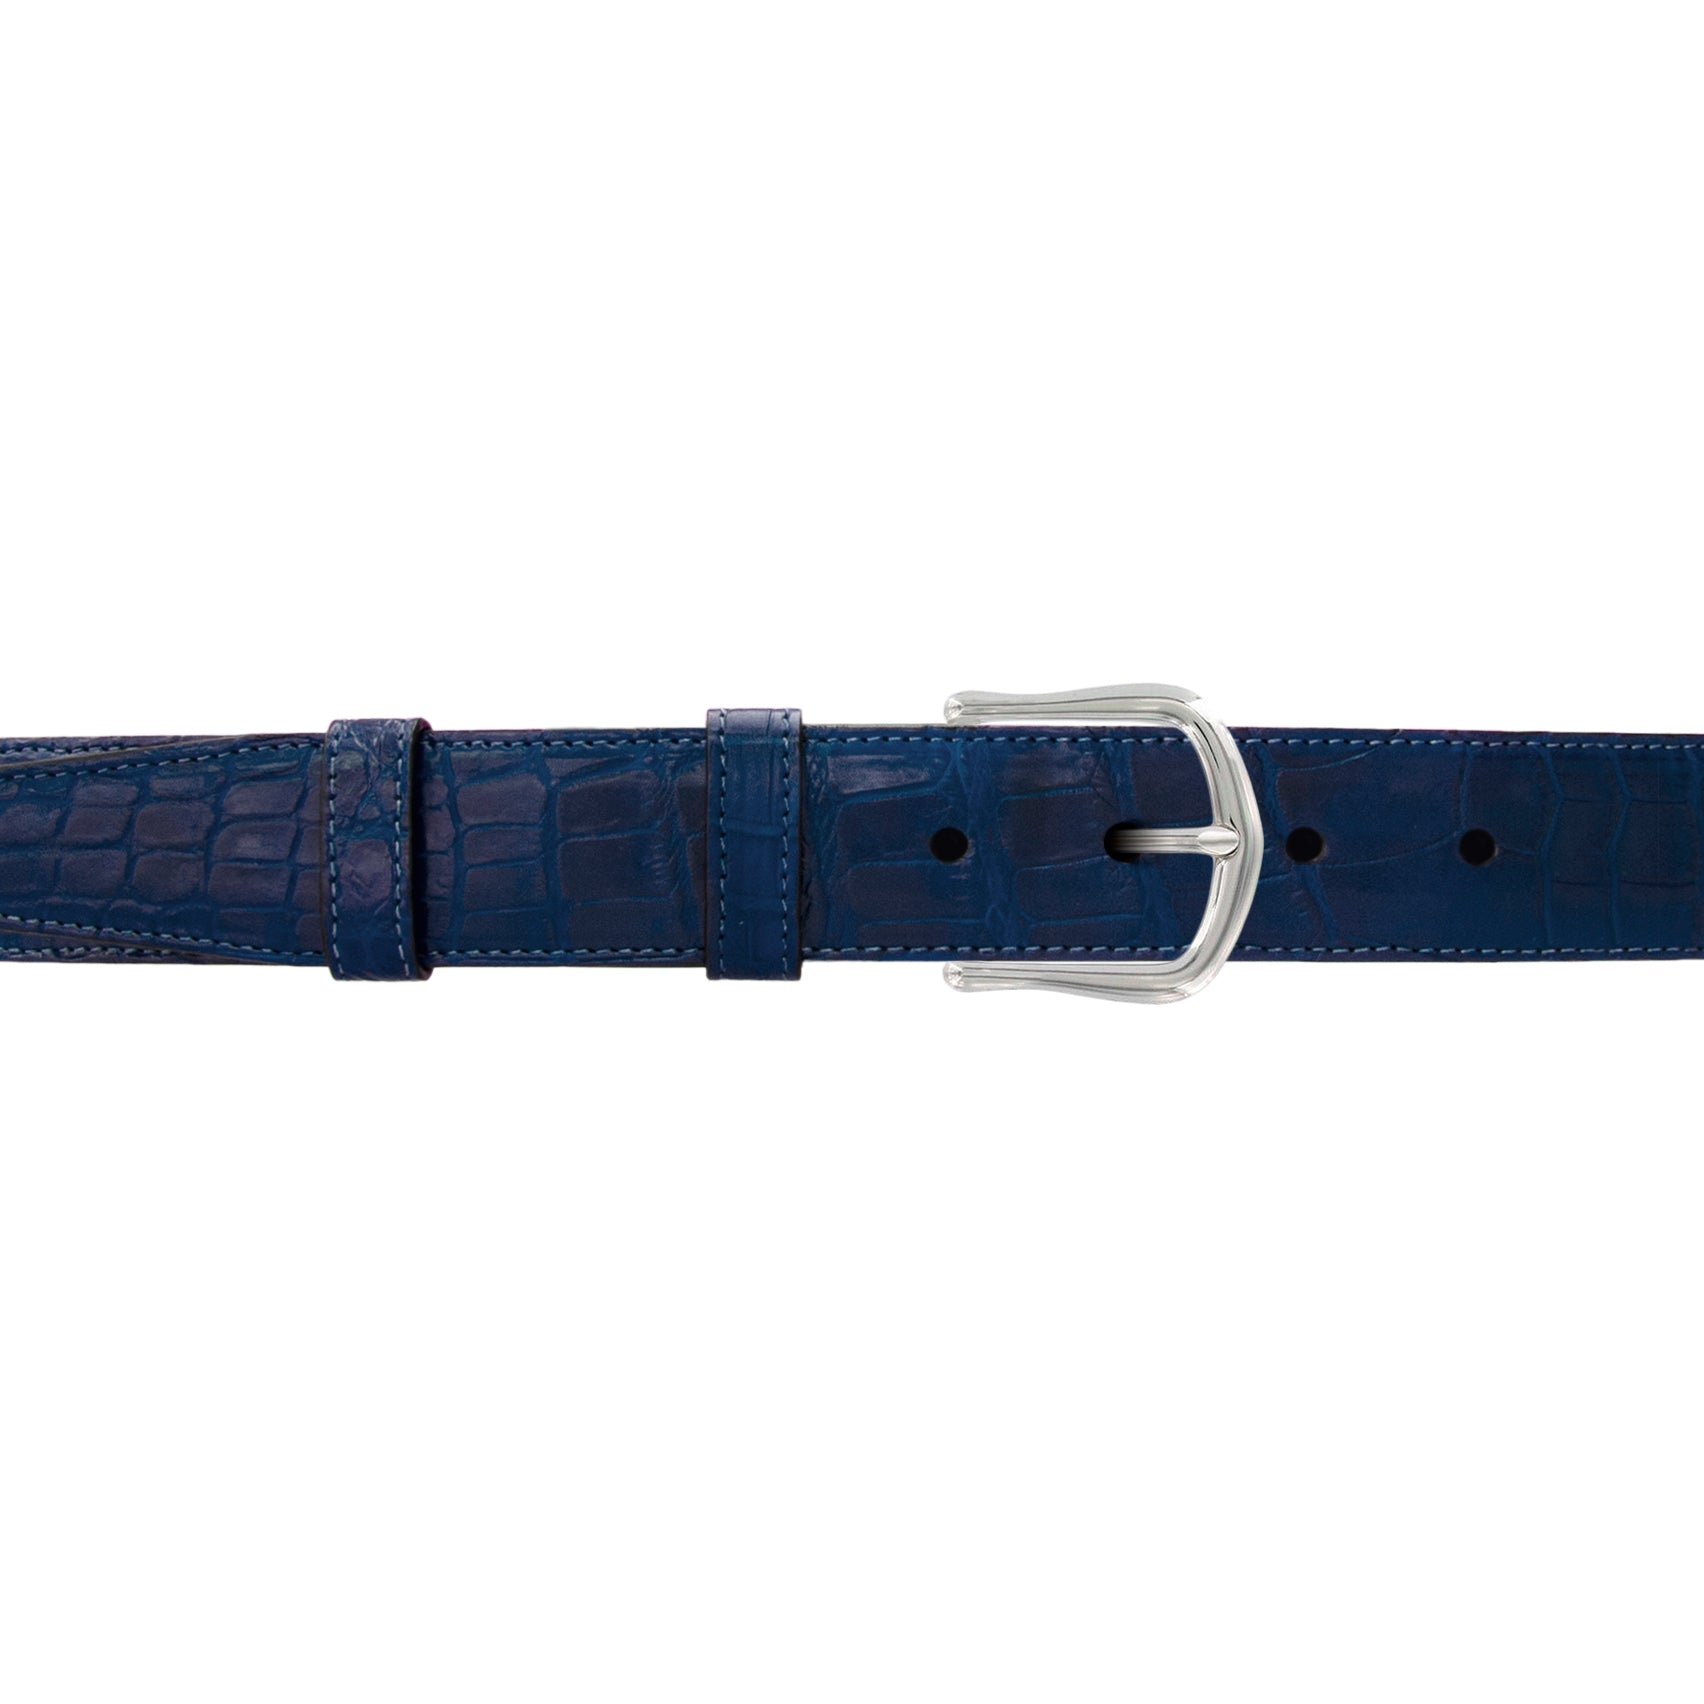 "1 1/4"" Royal Seasonal Belt with Derby Cocktail Buckle in Polished Nickel"